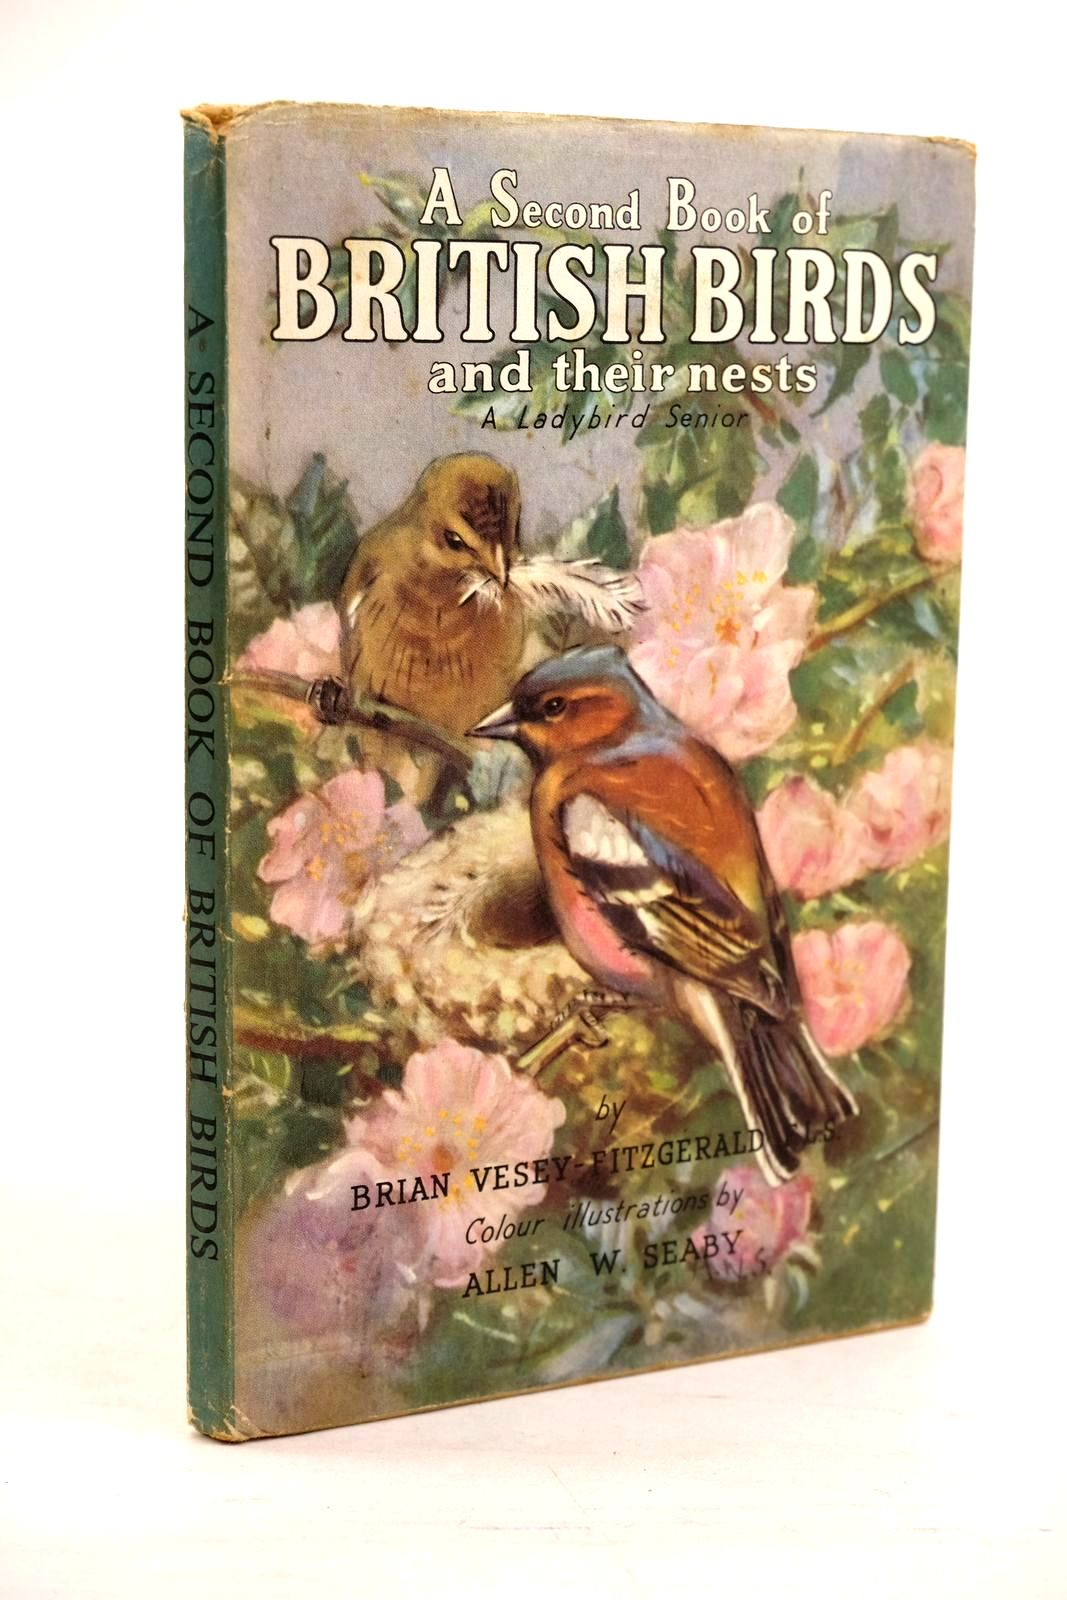 Photo of A SECOND BOOK OF BRITISH BIRDS AND THEIR NESTS written by Vesey-Fitzgerald, Brian illustrated by Seaby, Allen W. published by Wills & Hepworth Ltd. (STOCK CODE: 1320633)  for sale by Stella & Rose's Books